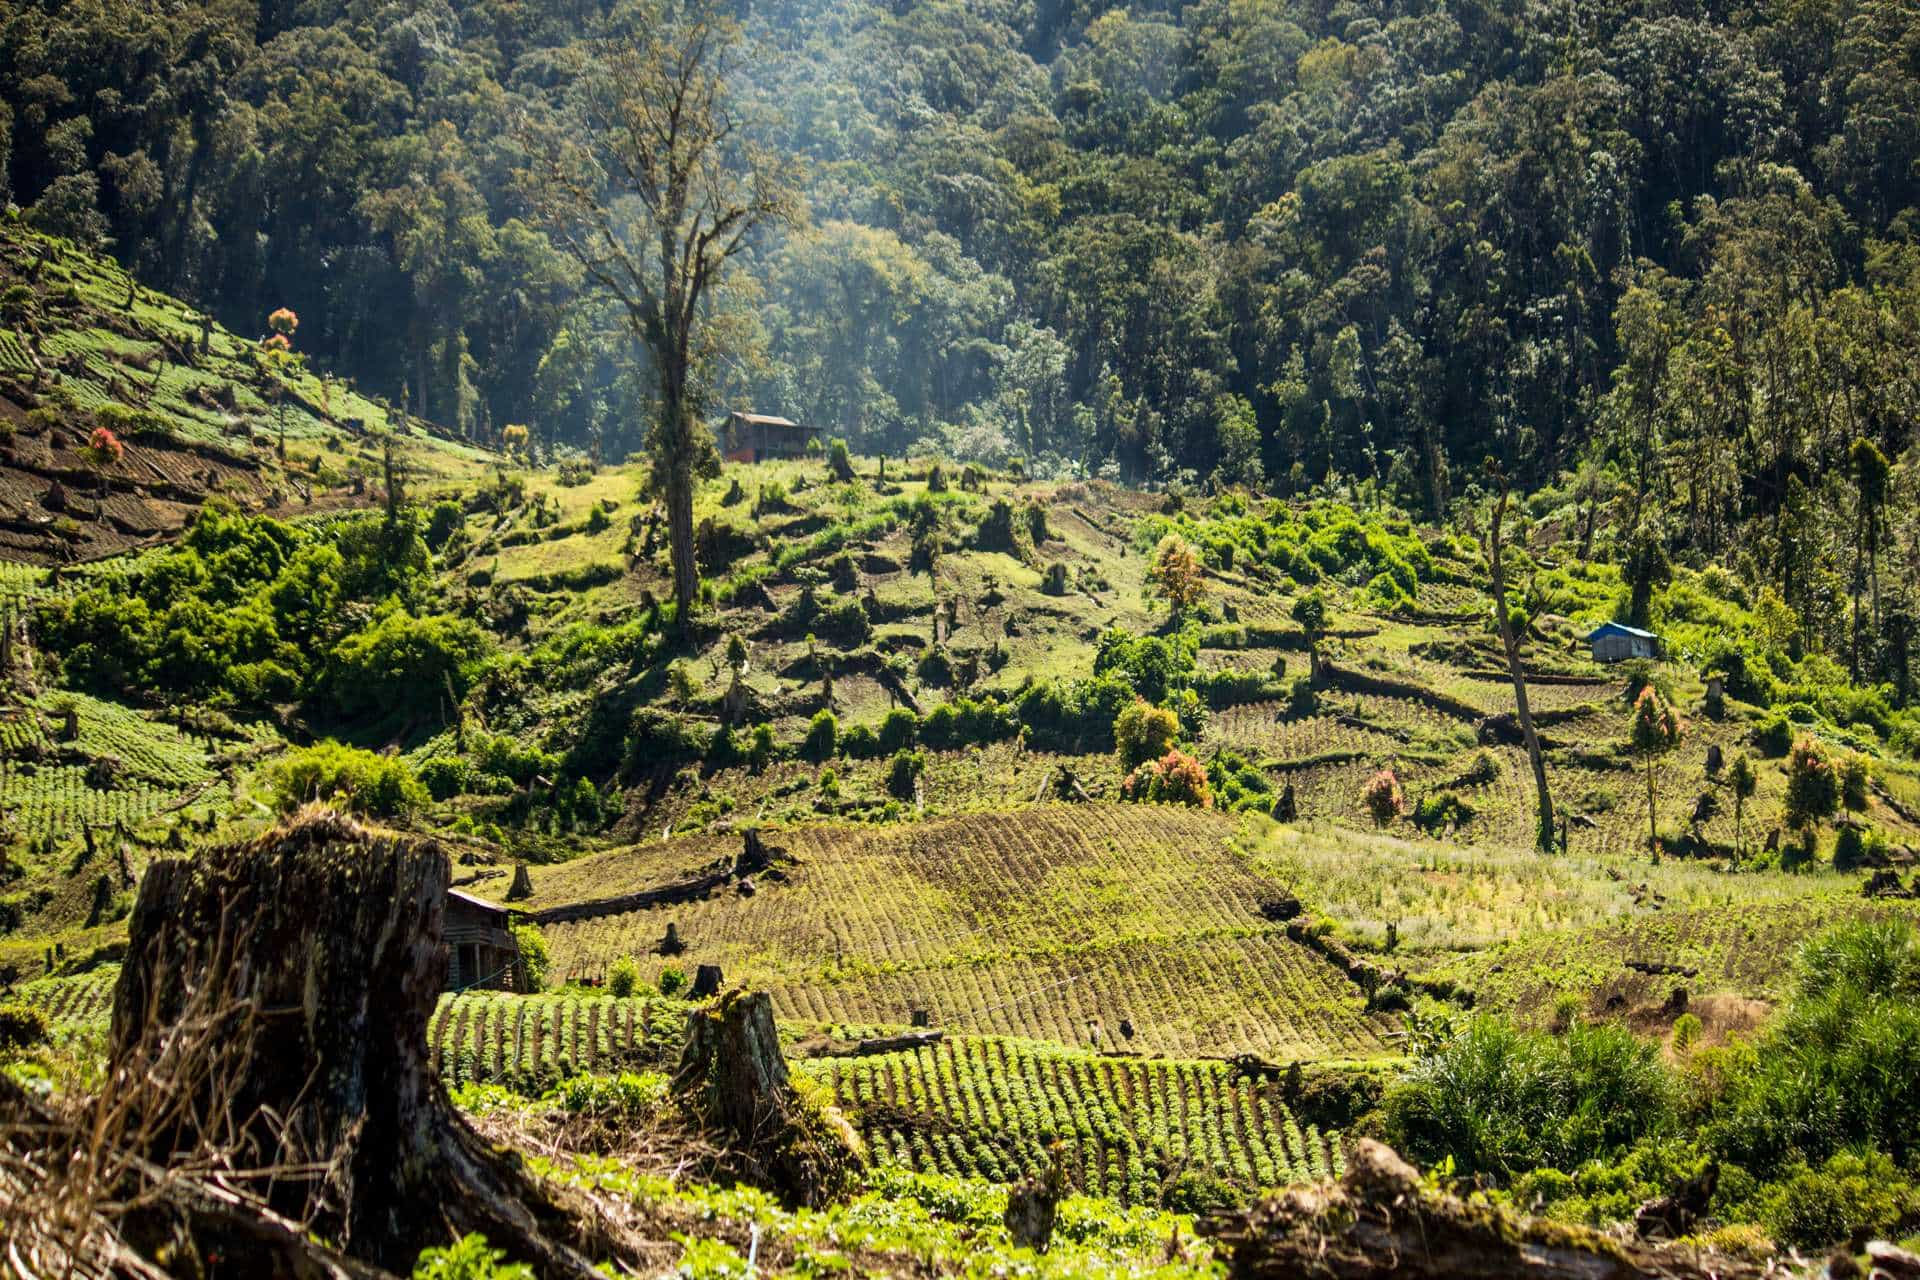 encroachment and illegal logging in kerinci seblat